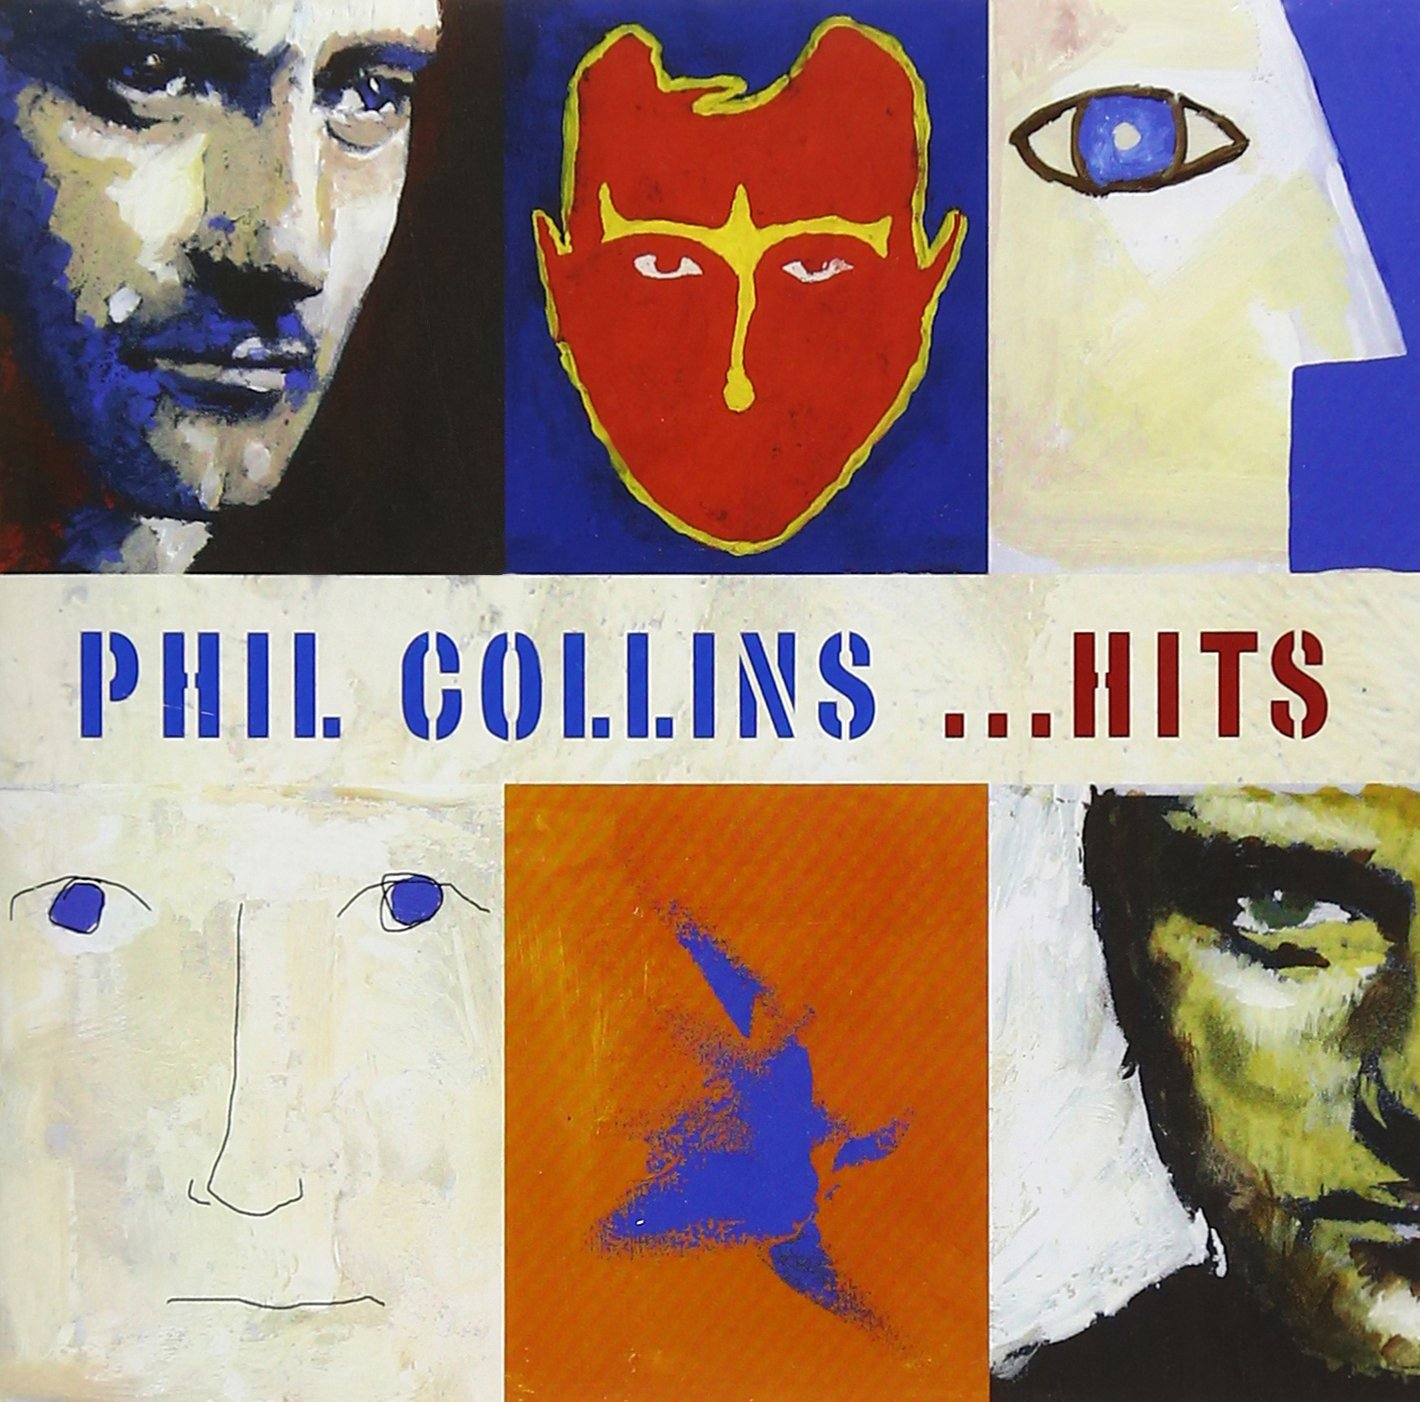 Phil Collins …Hits